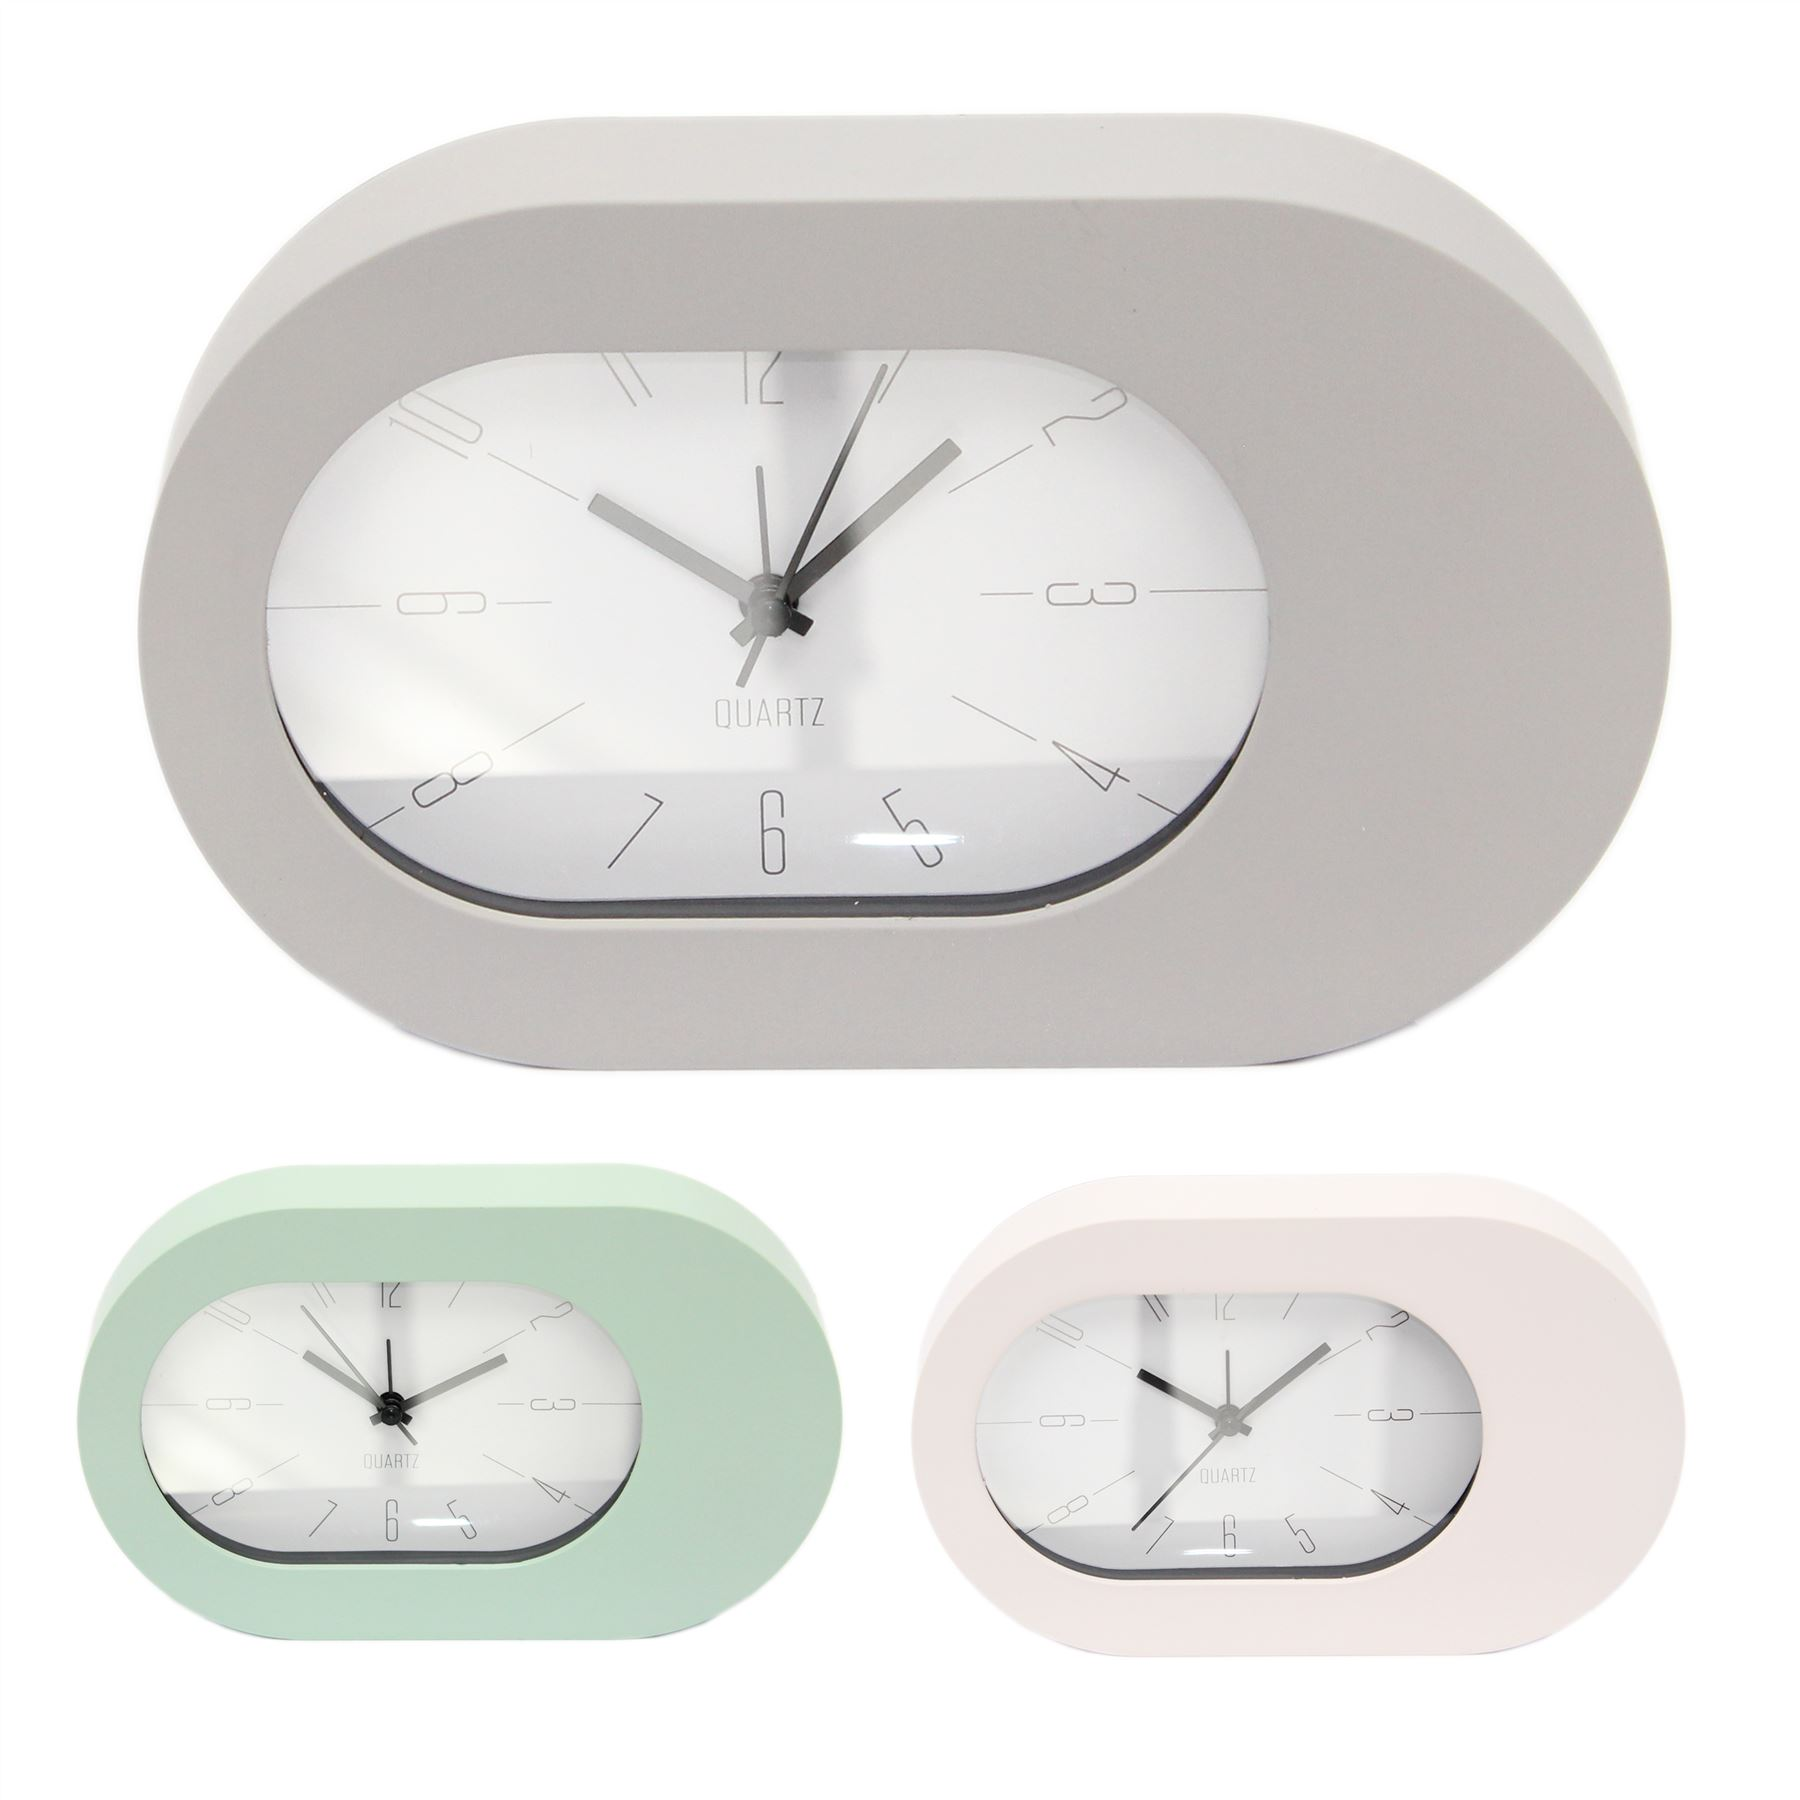 Oval Analogue Bedside Alarm Clock Modern Desk Clock Ebay